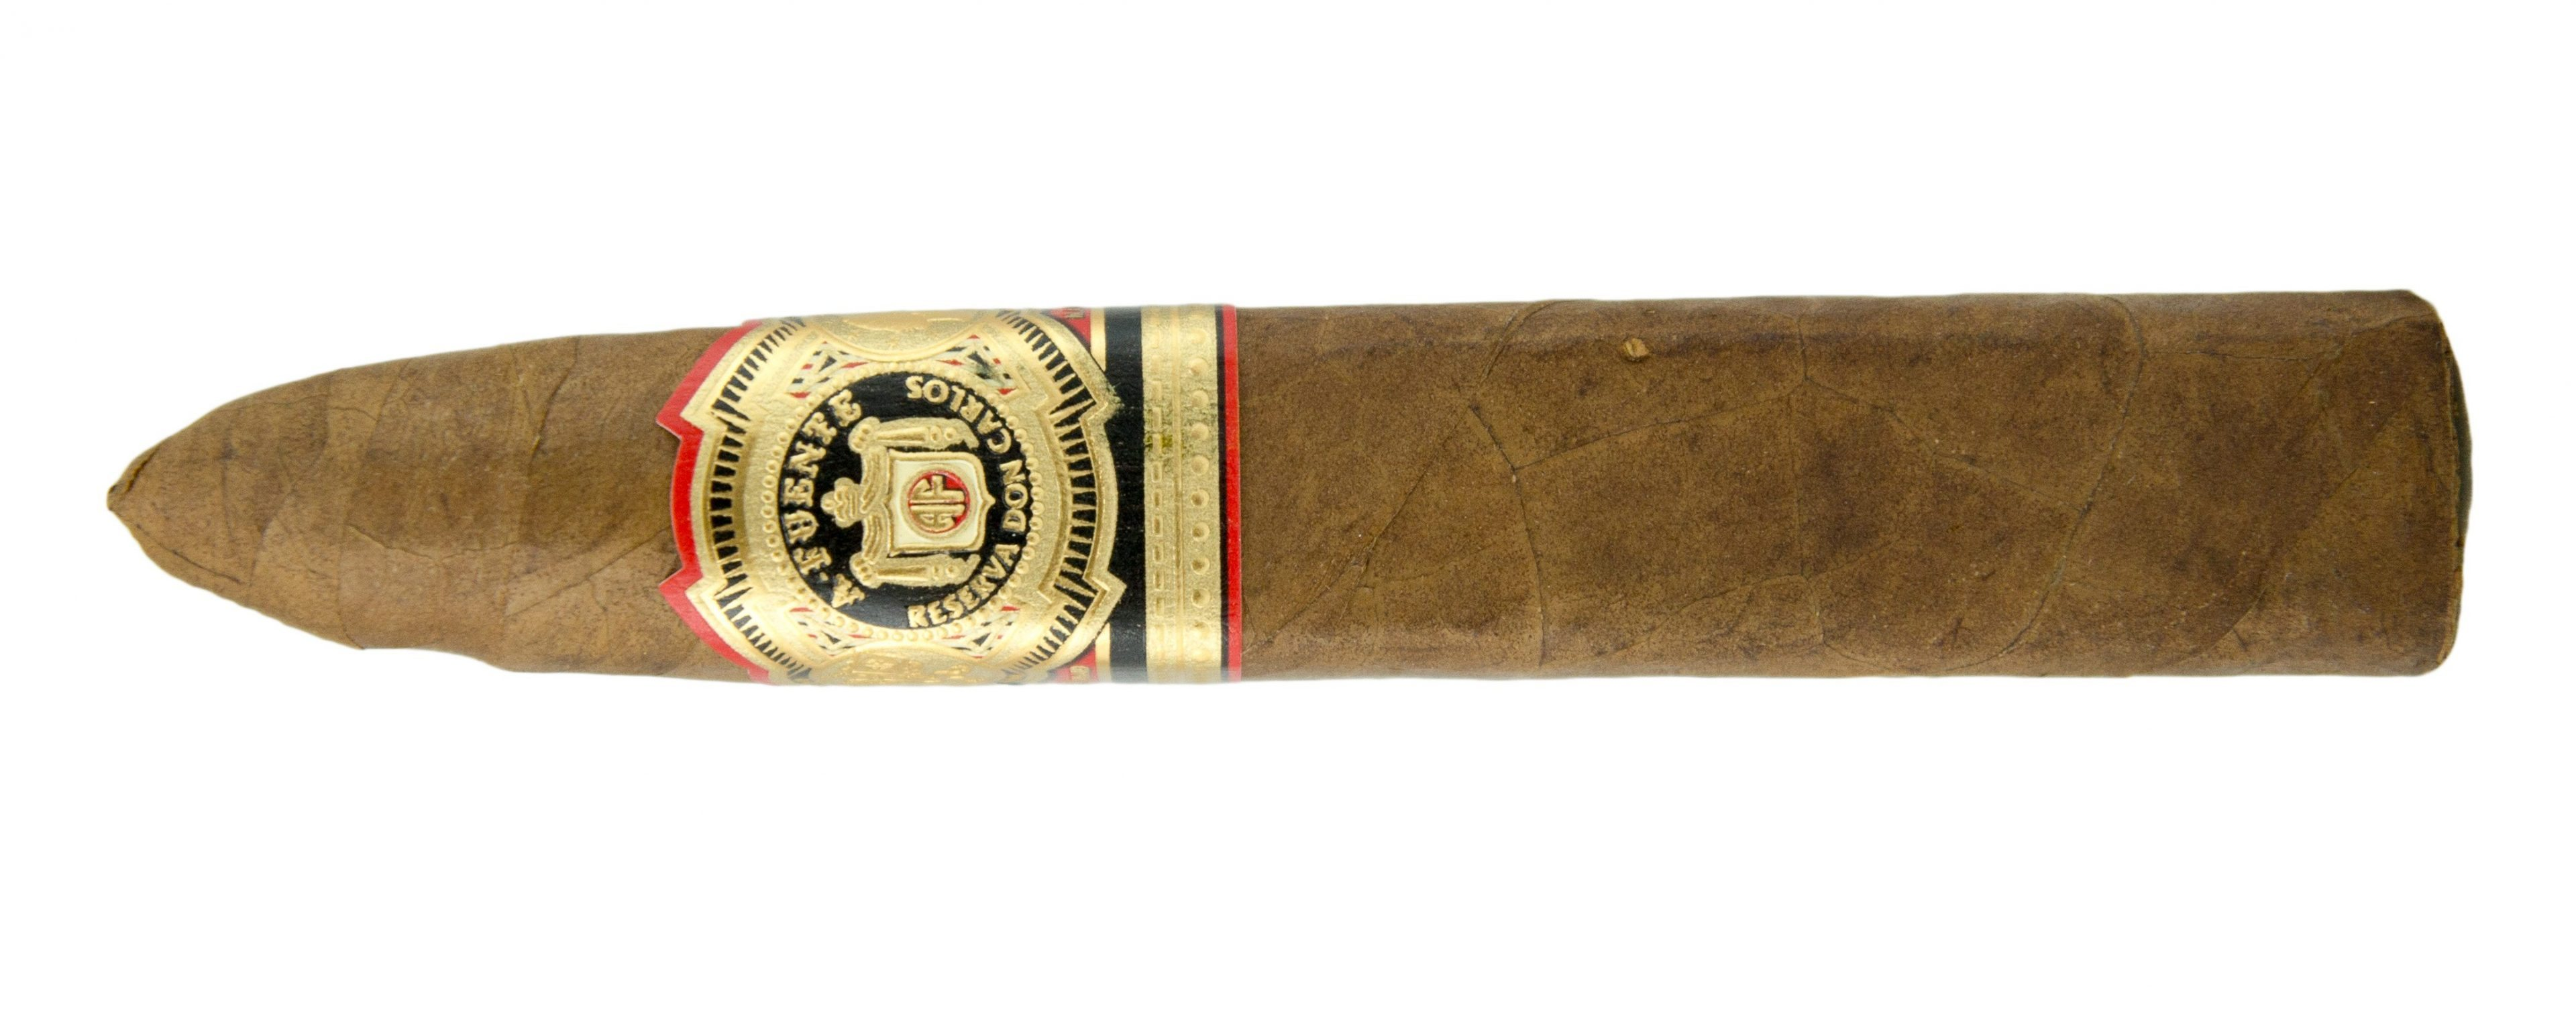 Quick Cigar Review: Arturo Fuente | Don Carlos Eye of the Shark